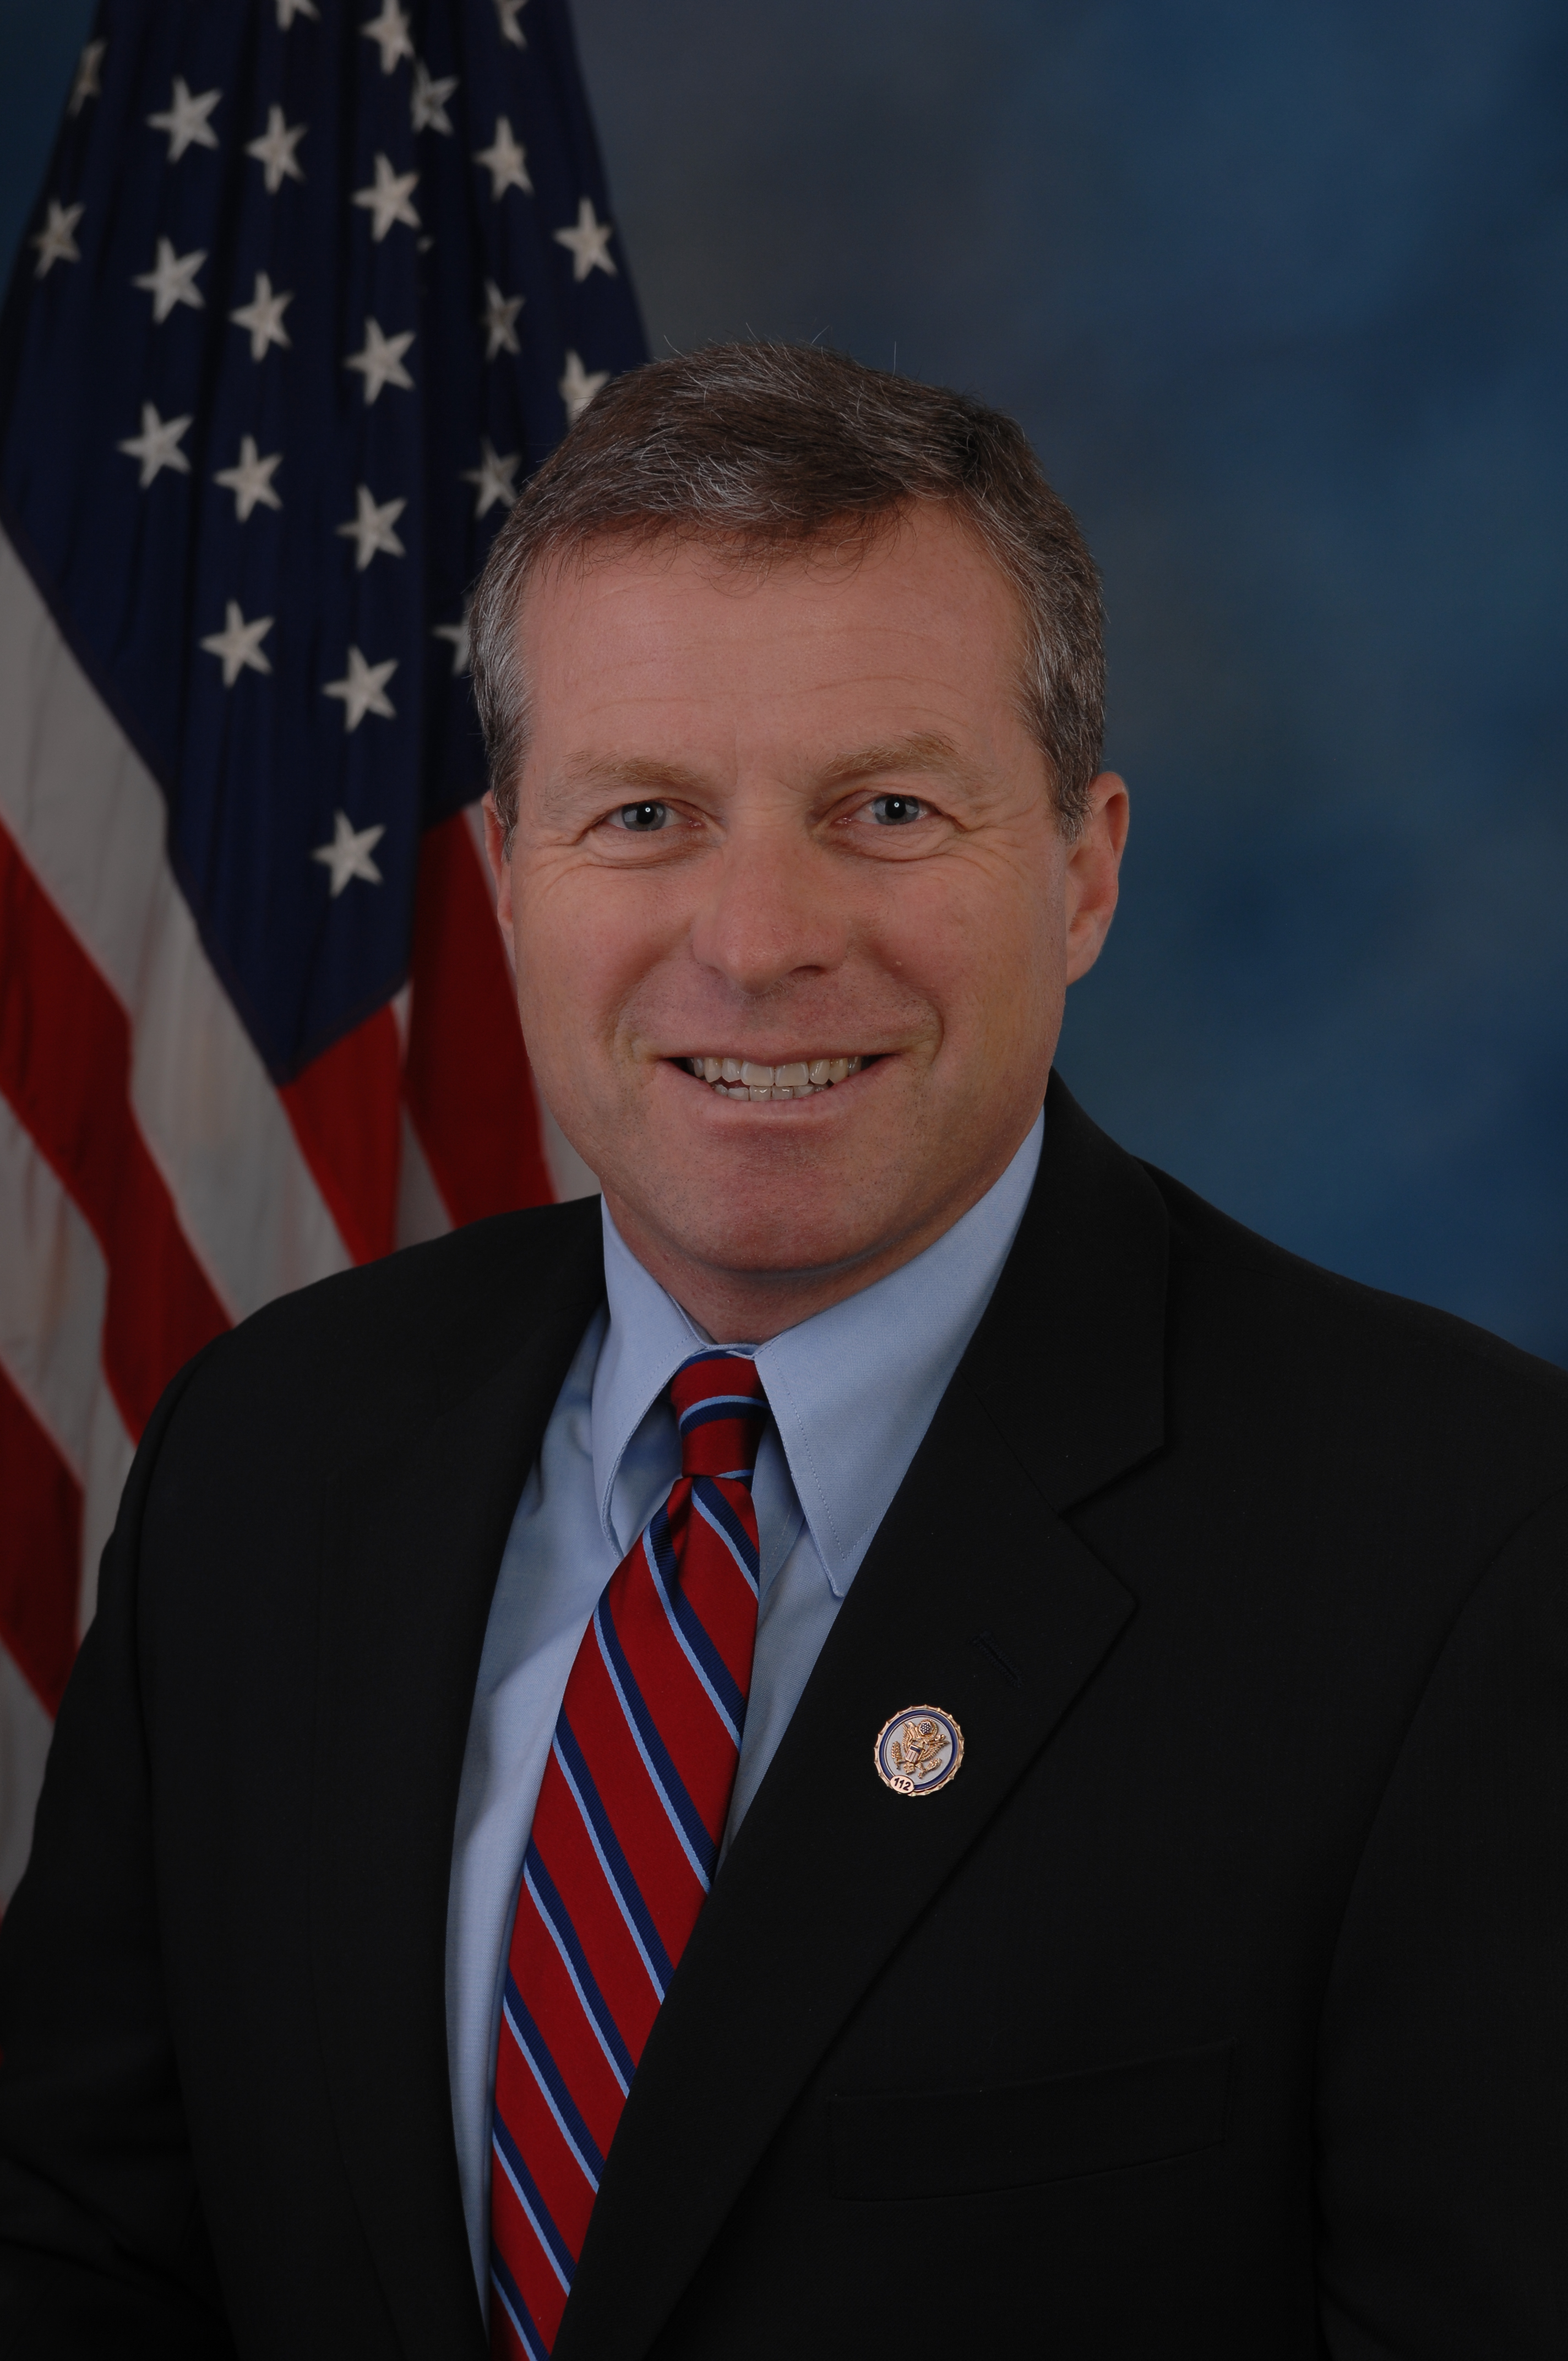 Charlie Dent's quote #2